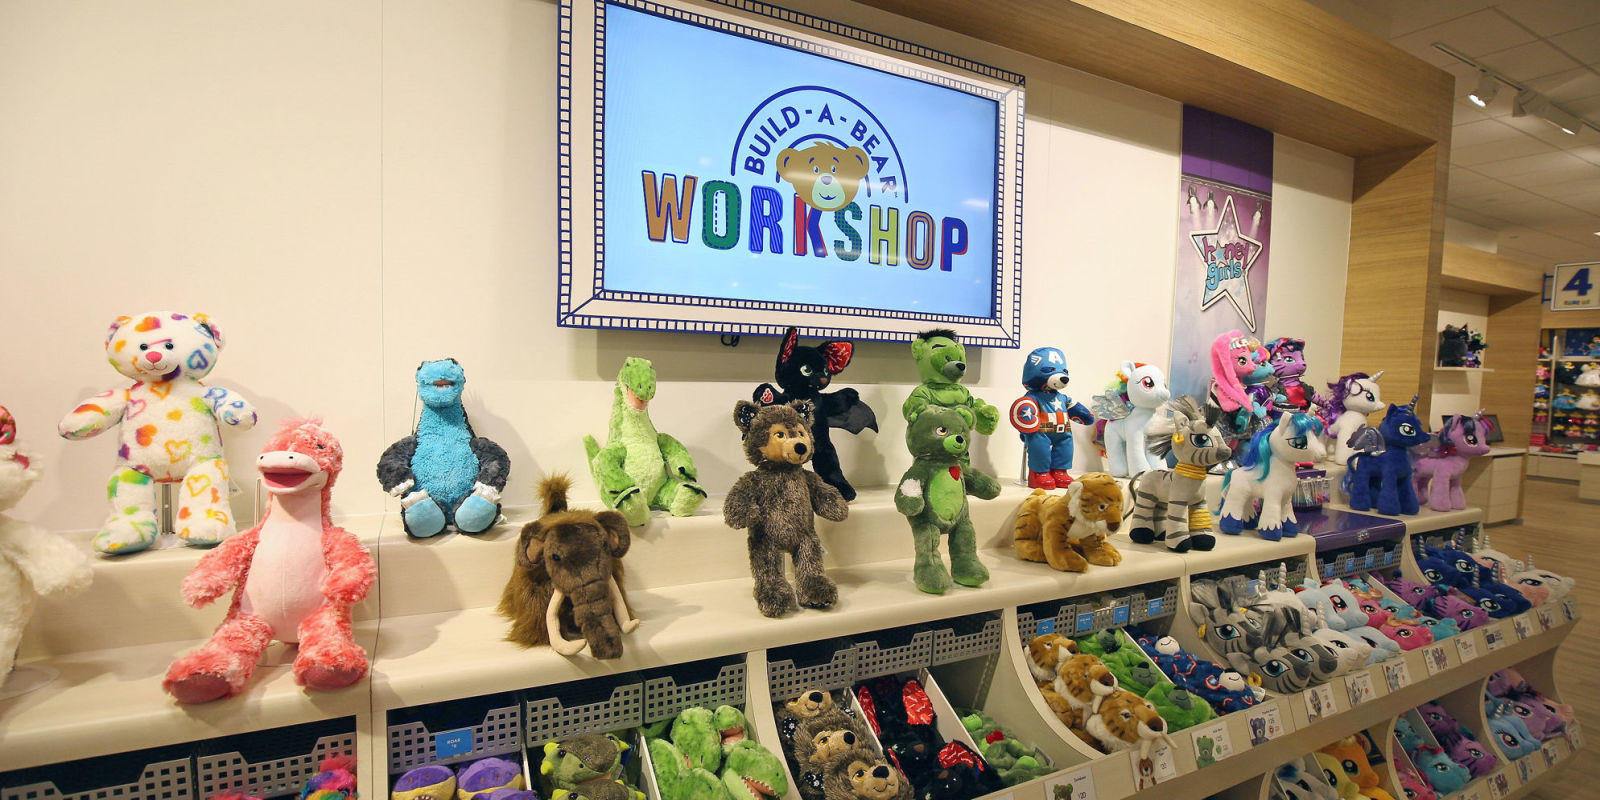 digital photo organizing ideas - Build A Bear Recalls 33 000 Stuffed Animals Toy Recalls